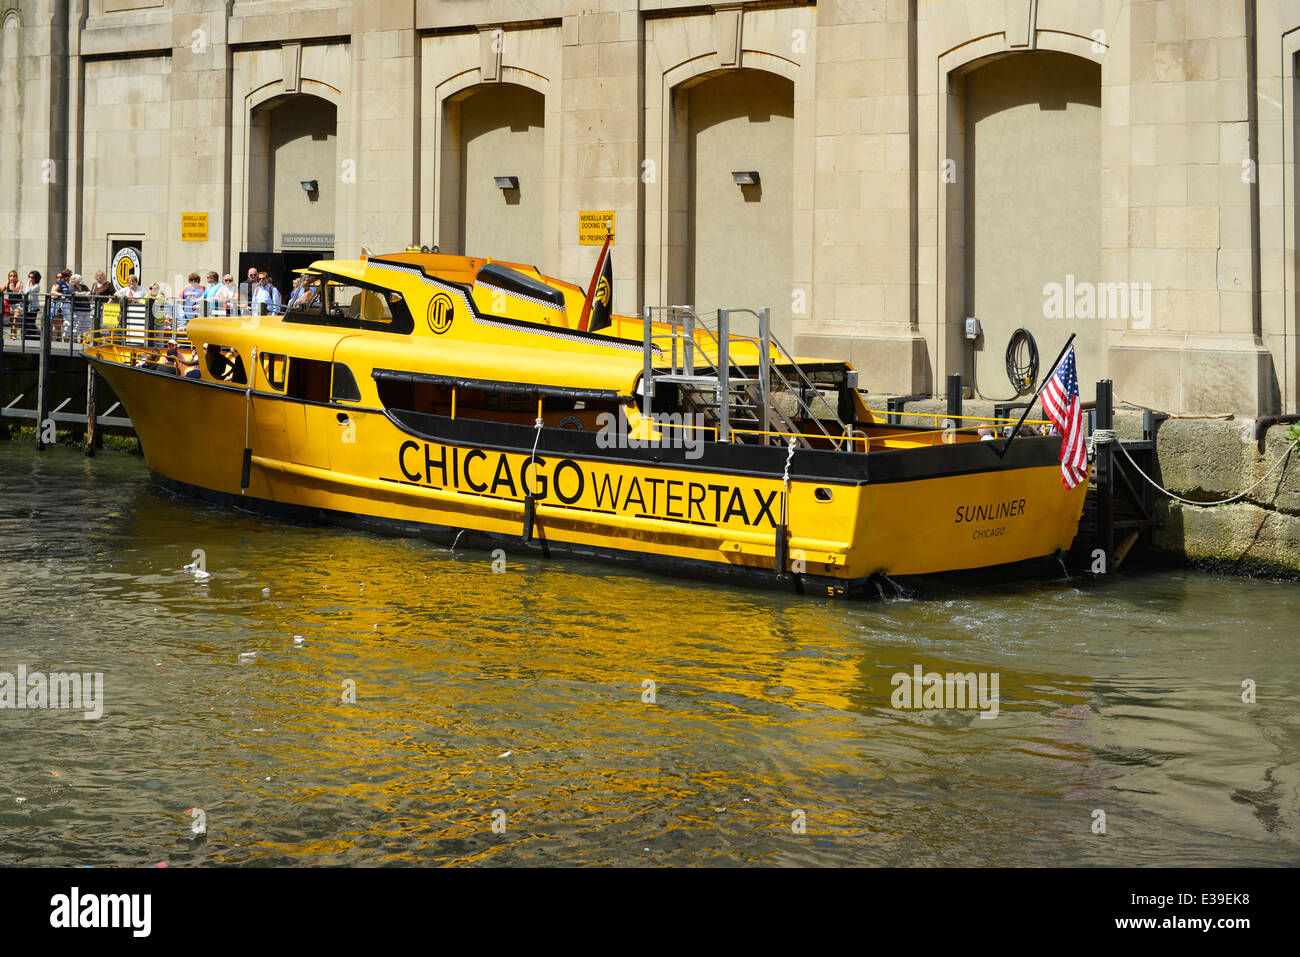 Chicago Watertaxi on the Chicago River picking up passengers, Illinois - Stock Image